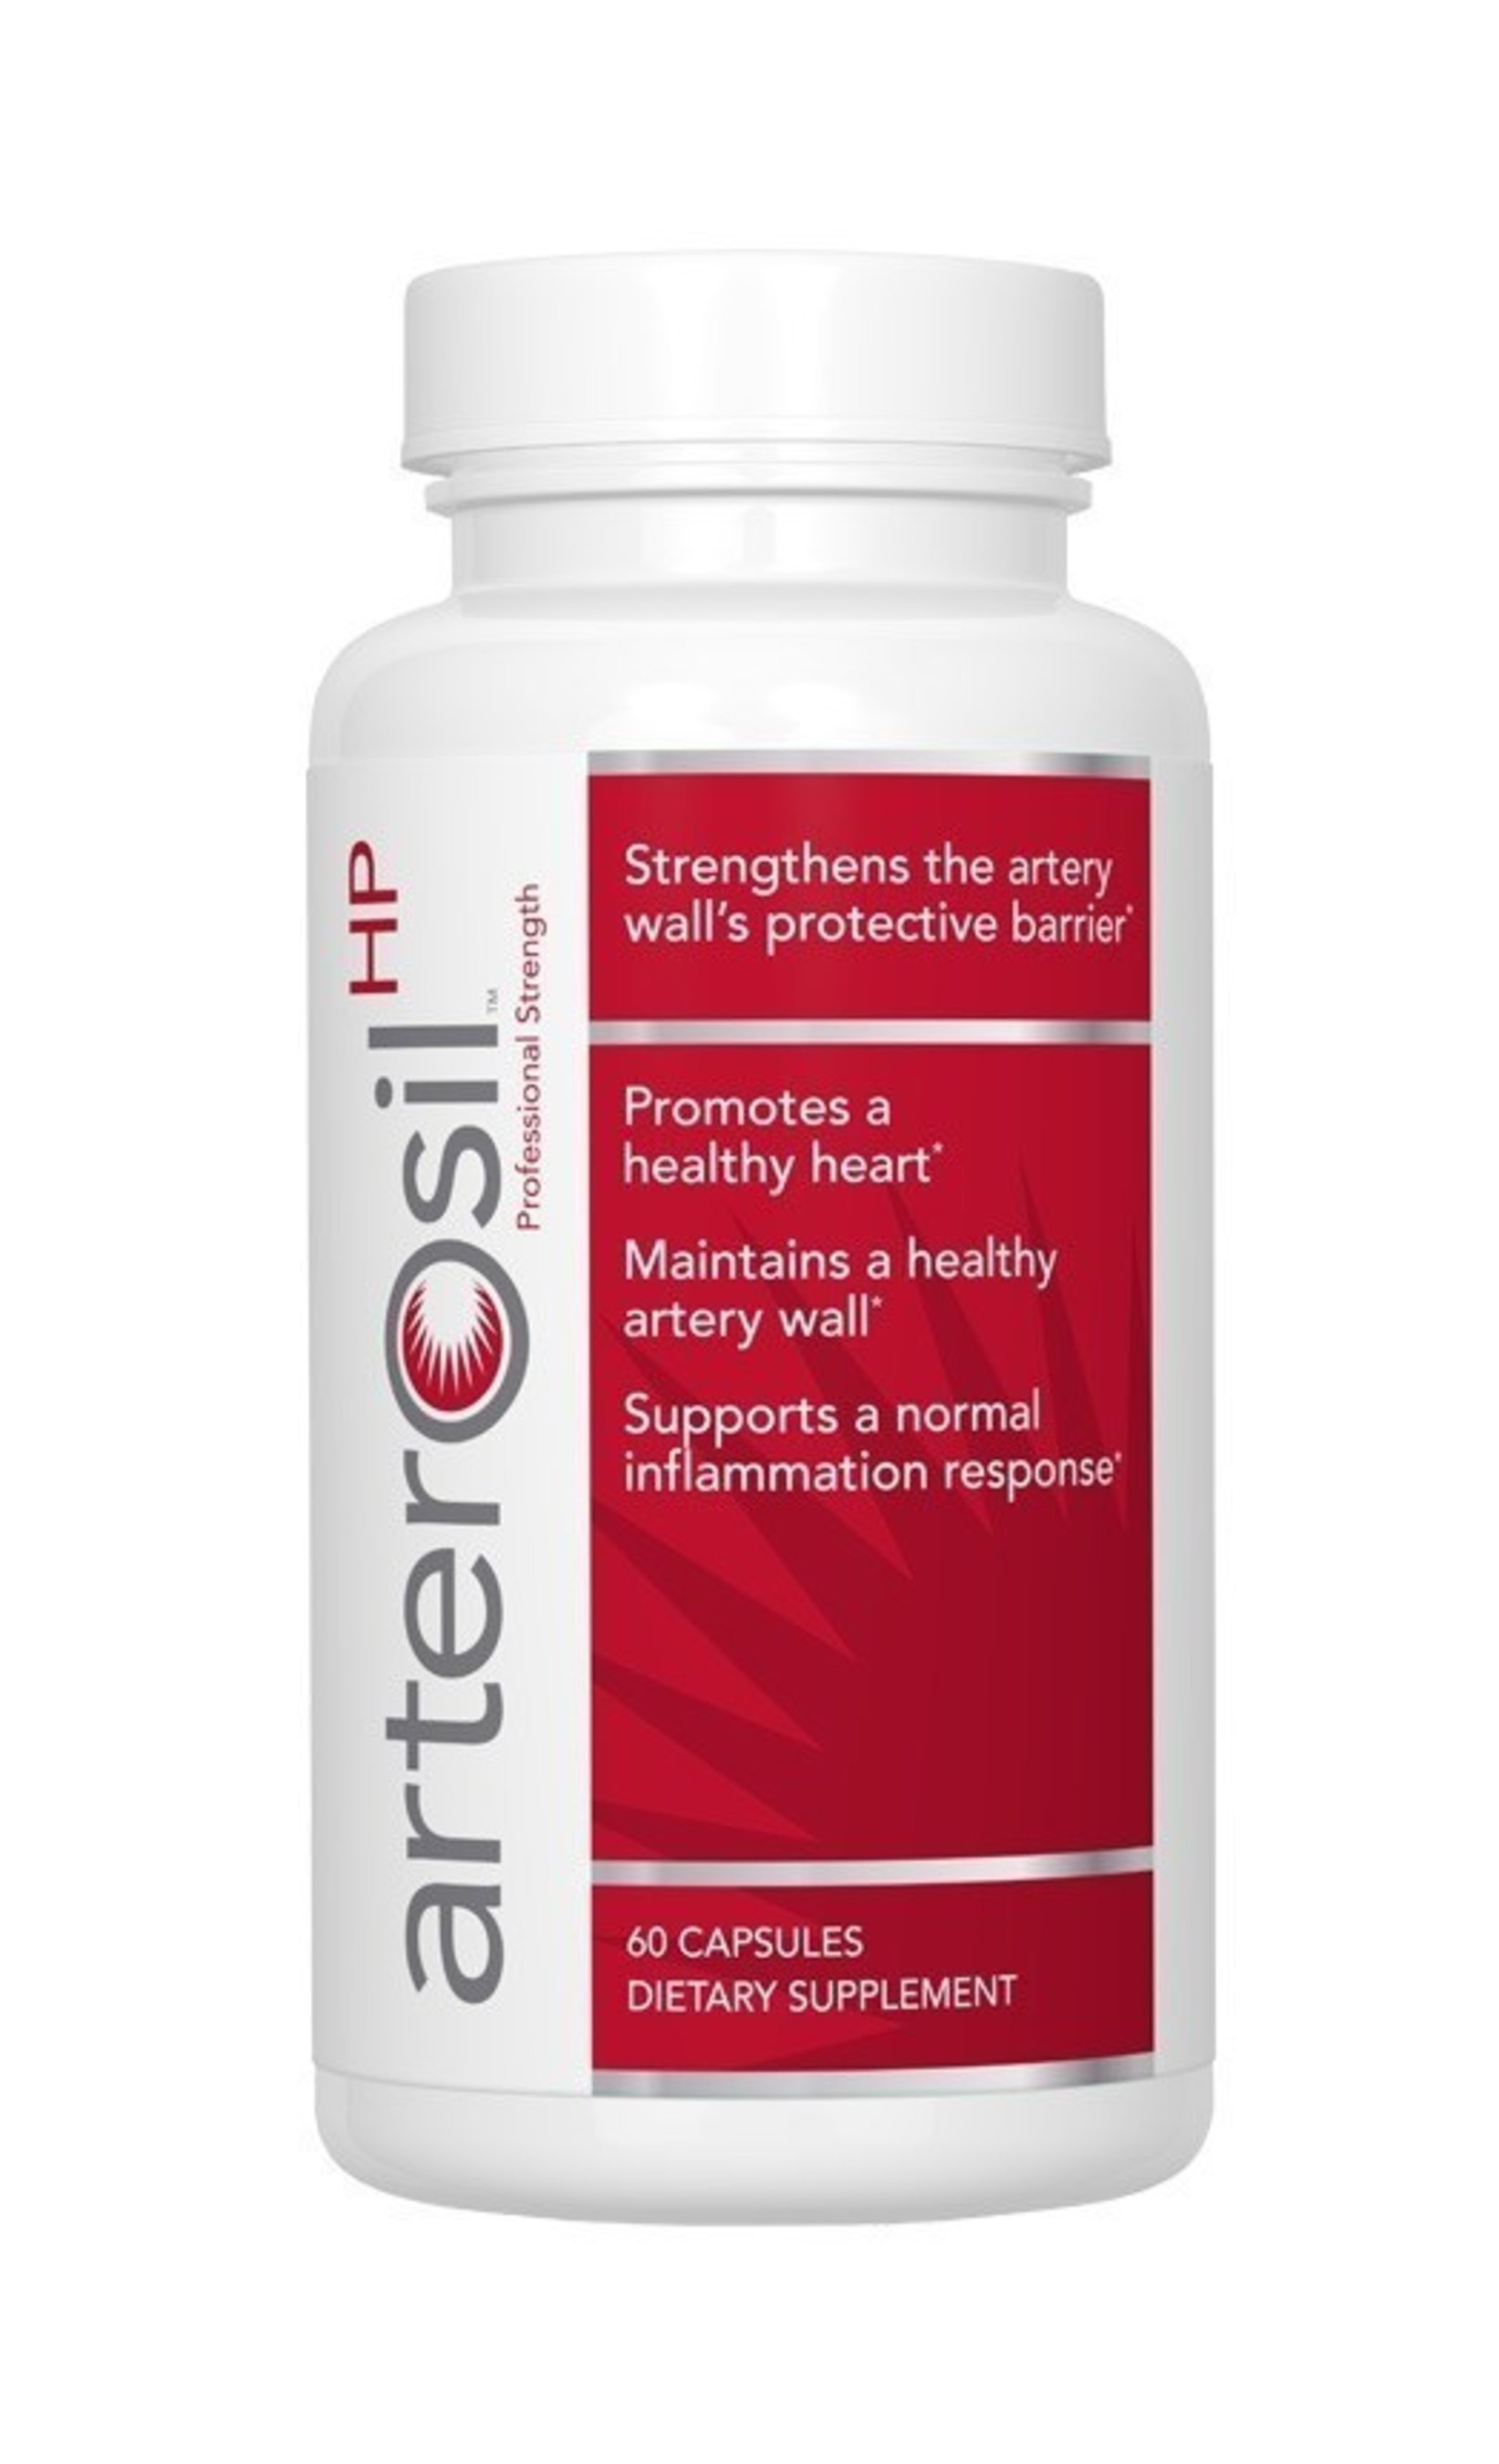 Morningbell Wellness Acquires Arterosil, the First Supplement to Promote a Healthy Glycocalyx